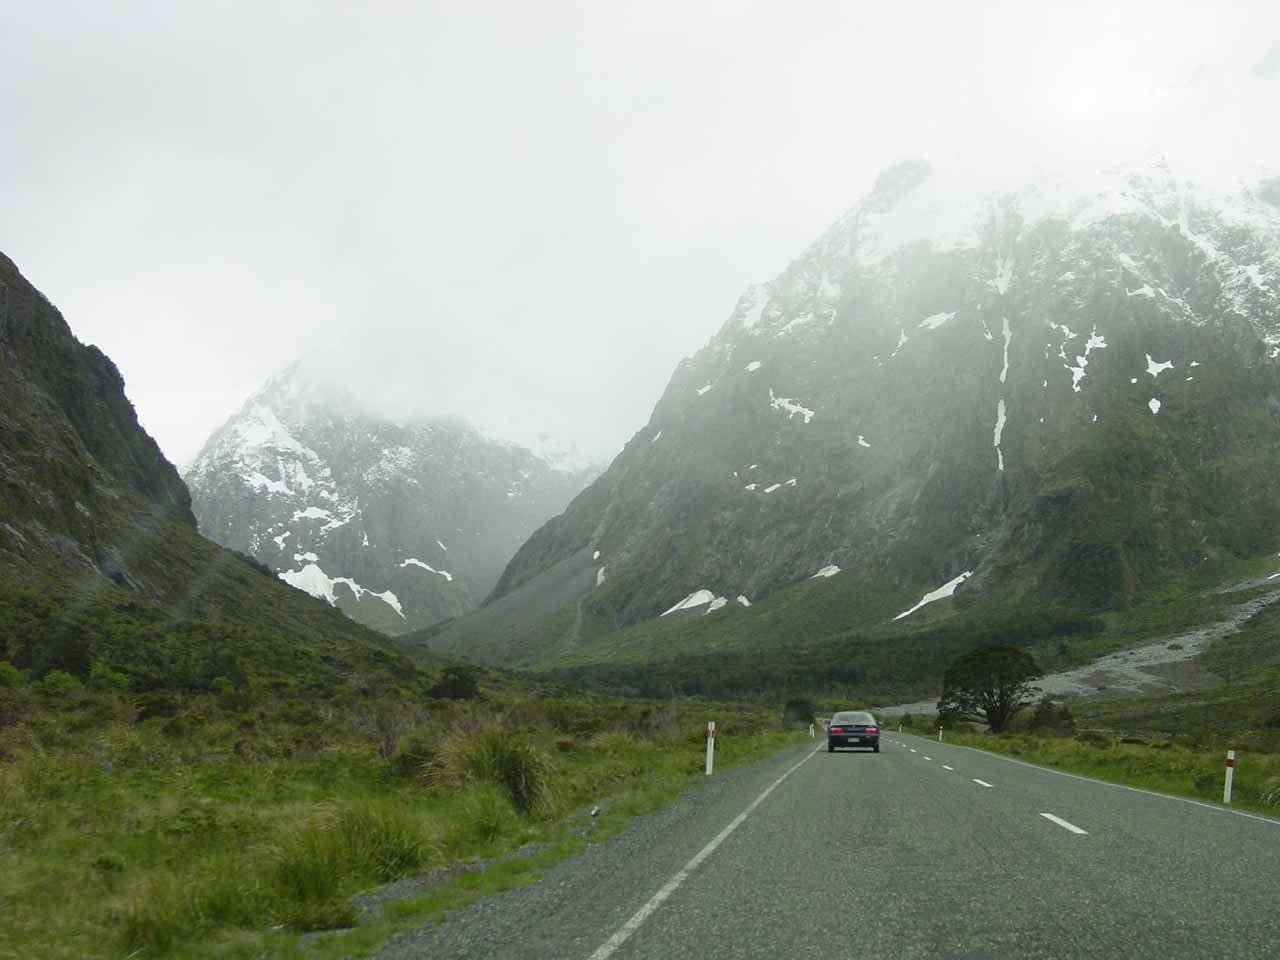 The weather seemed to deteriorate the closer to the Homer Tunnel we went